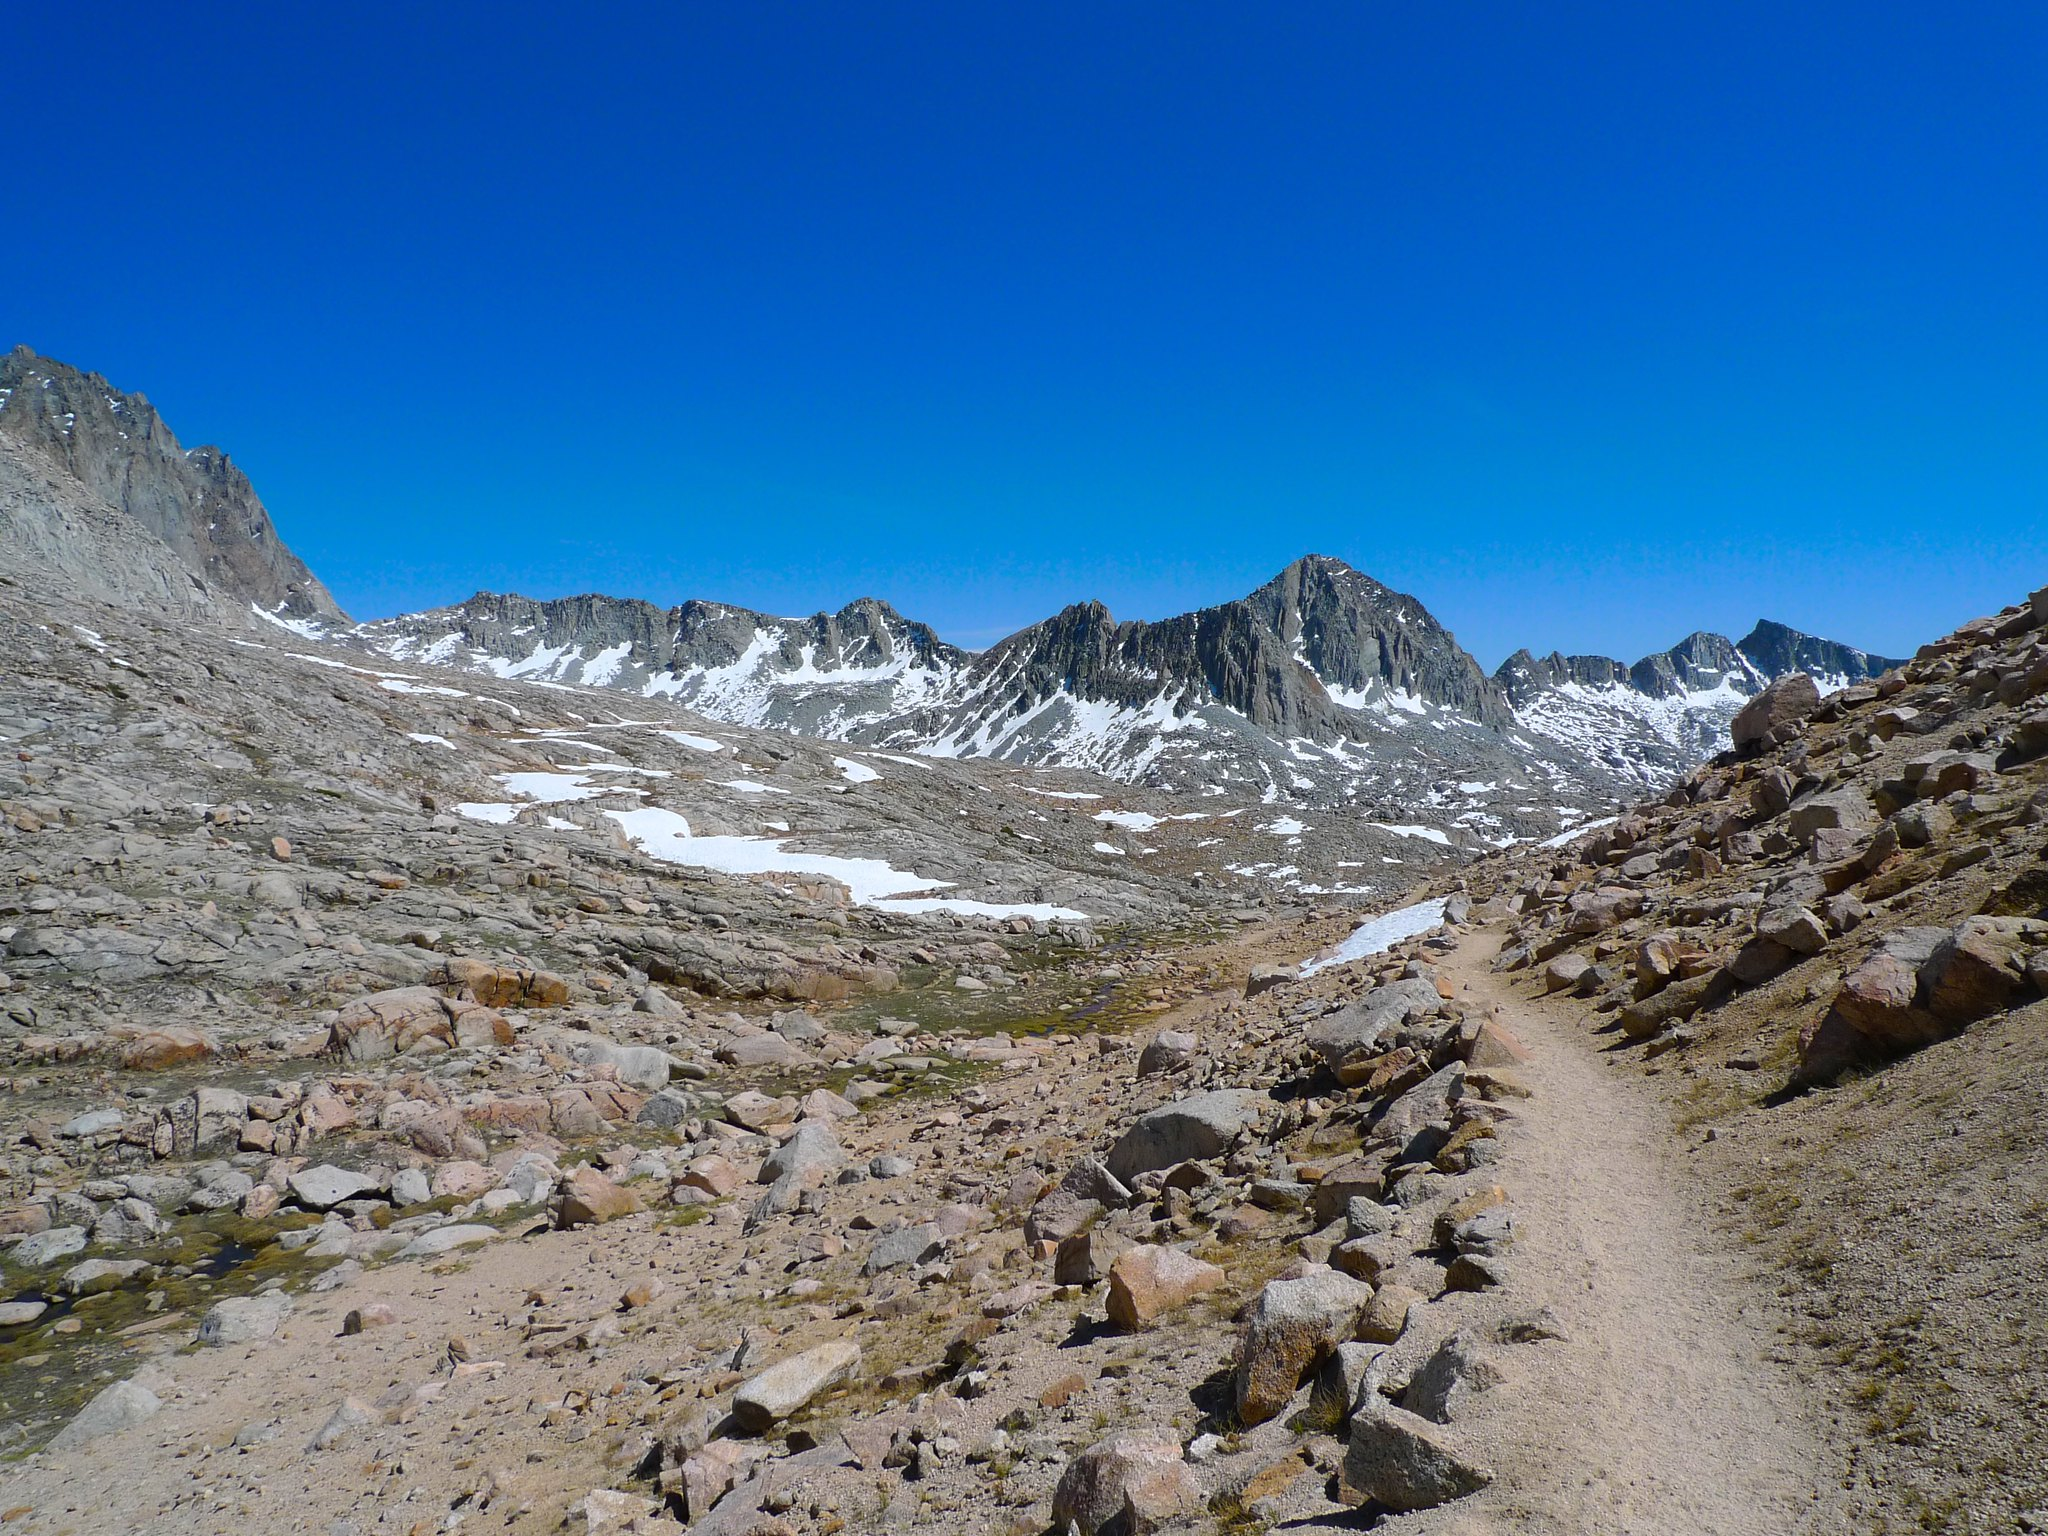 Descending into Dusy Basin